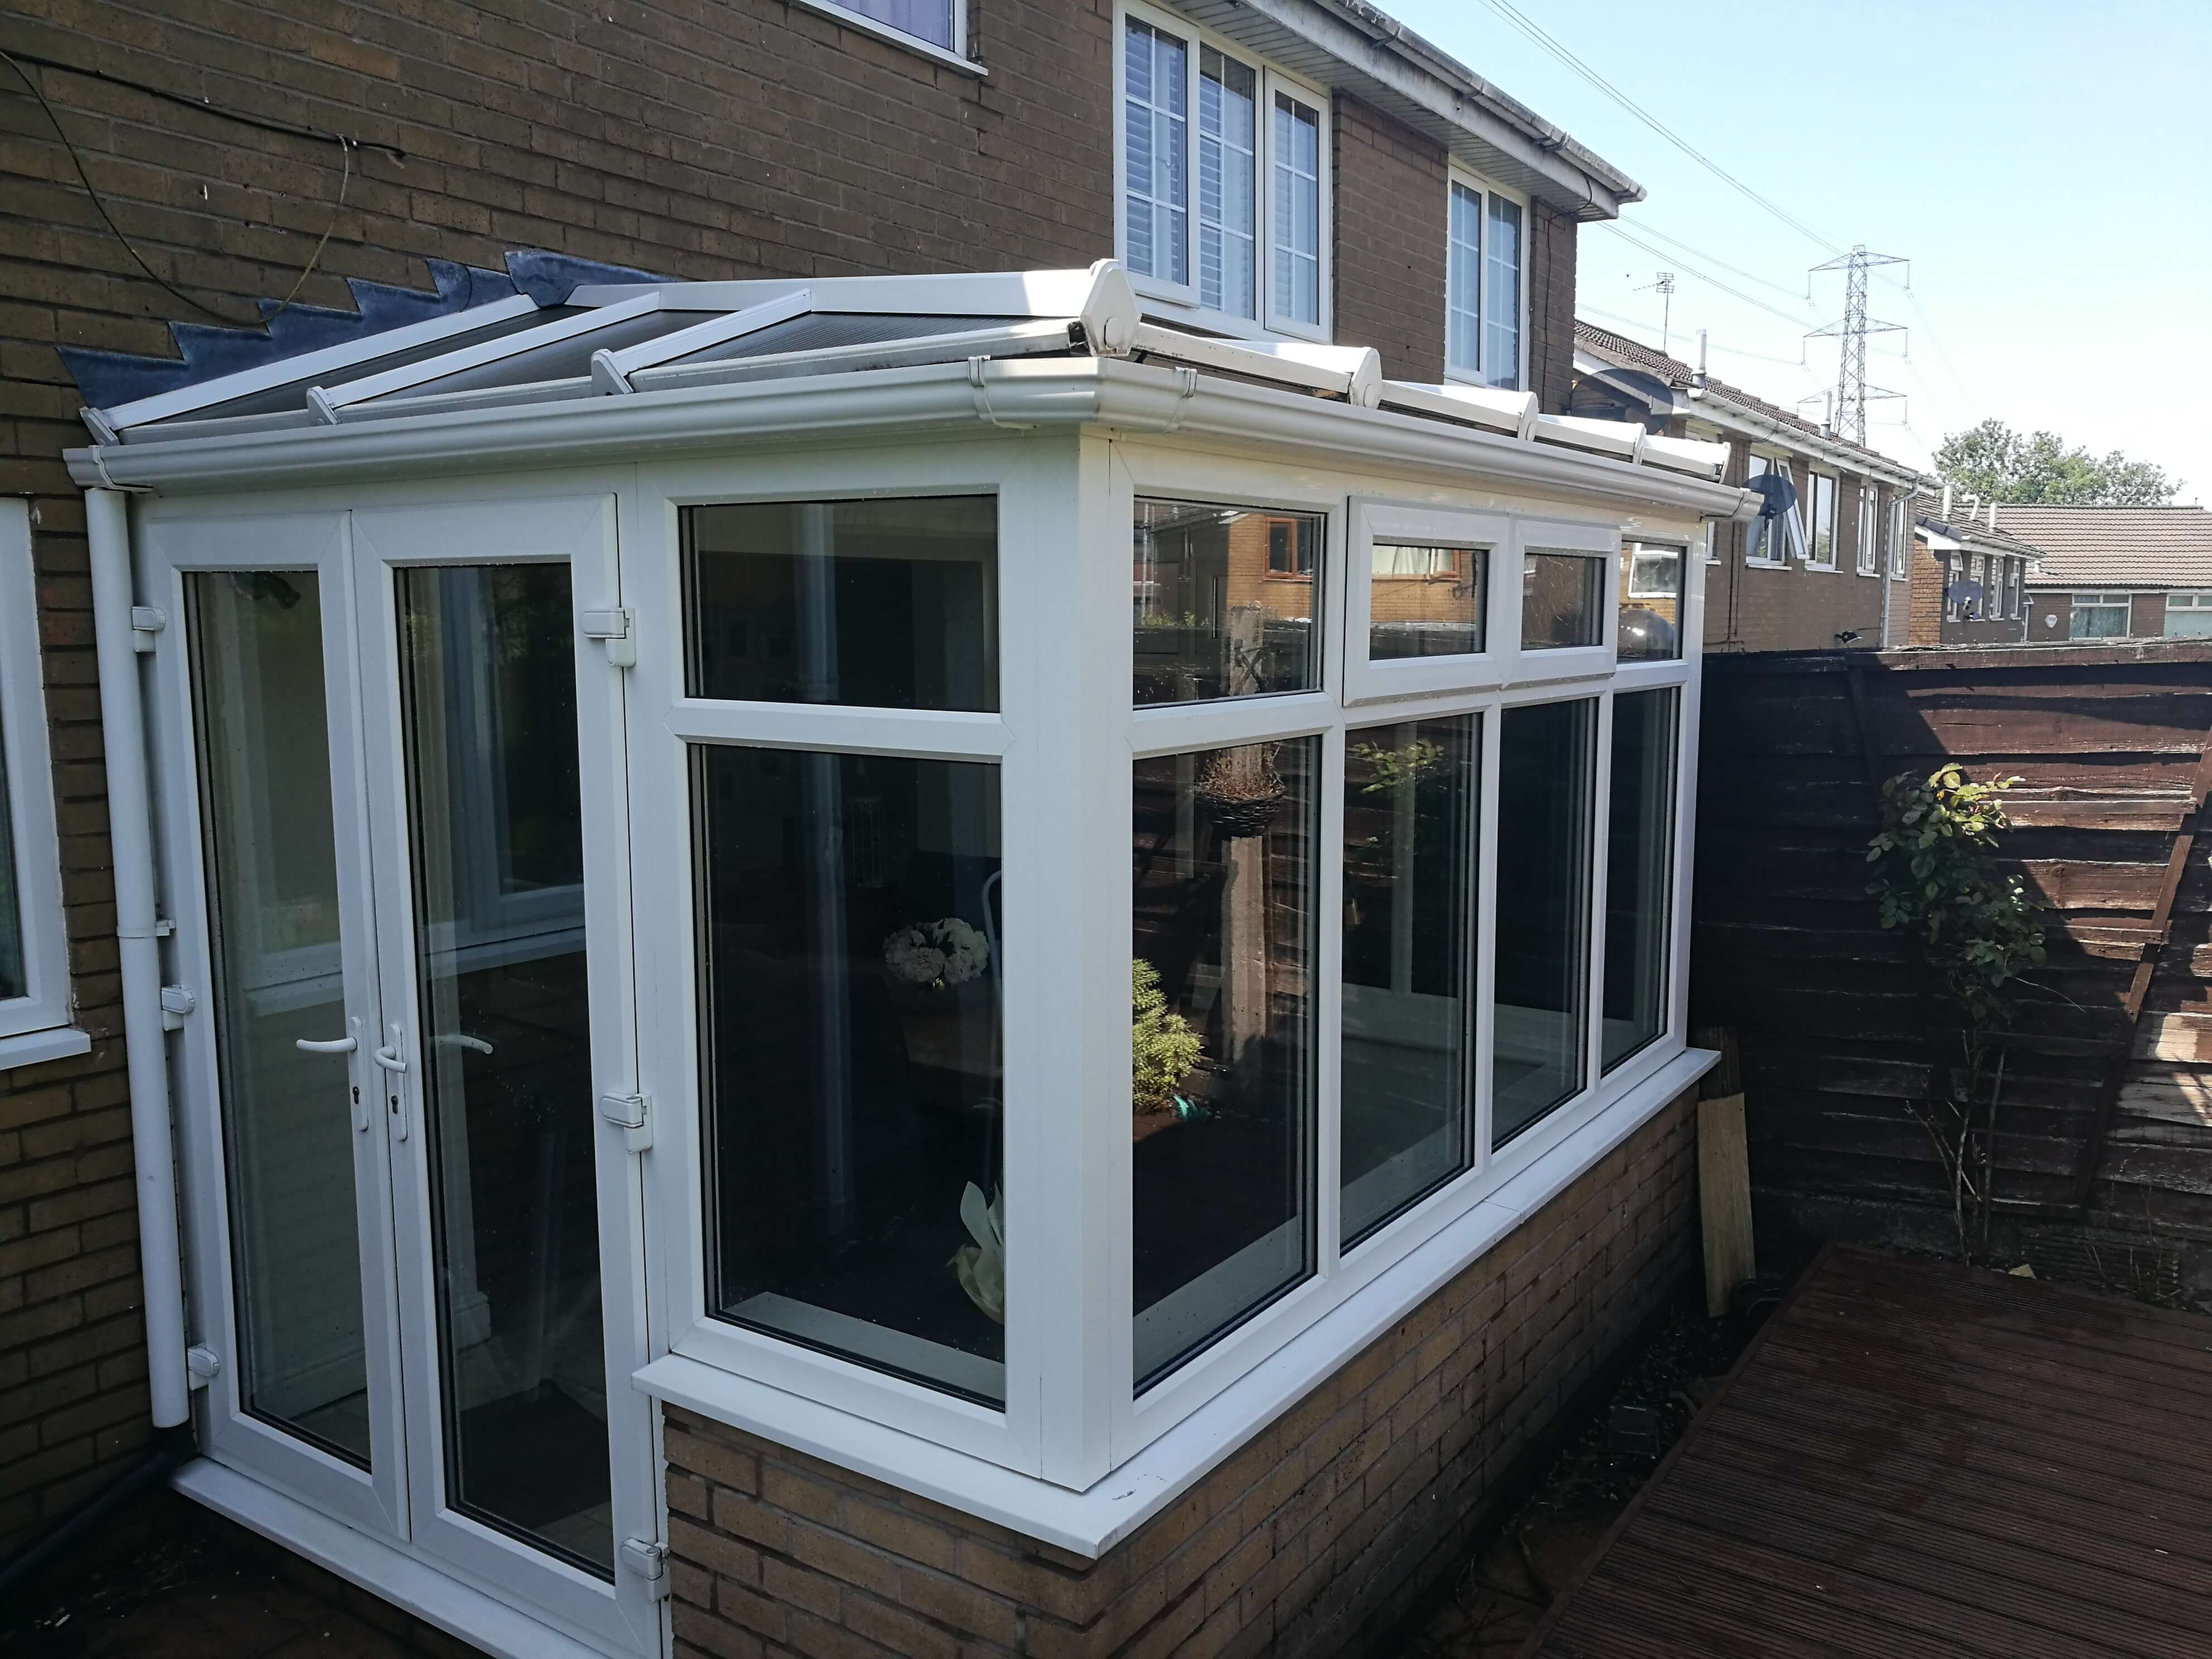 Conservtory Cleaned With R n B Window Cleanings Pure Water System